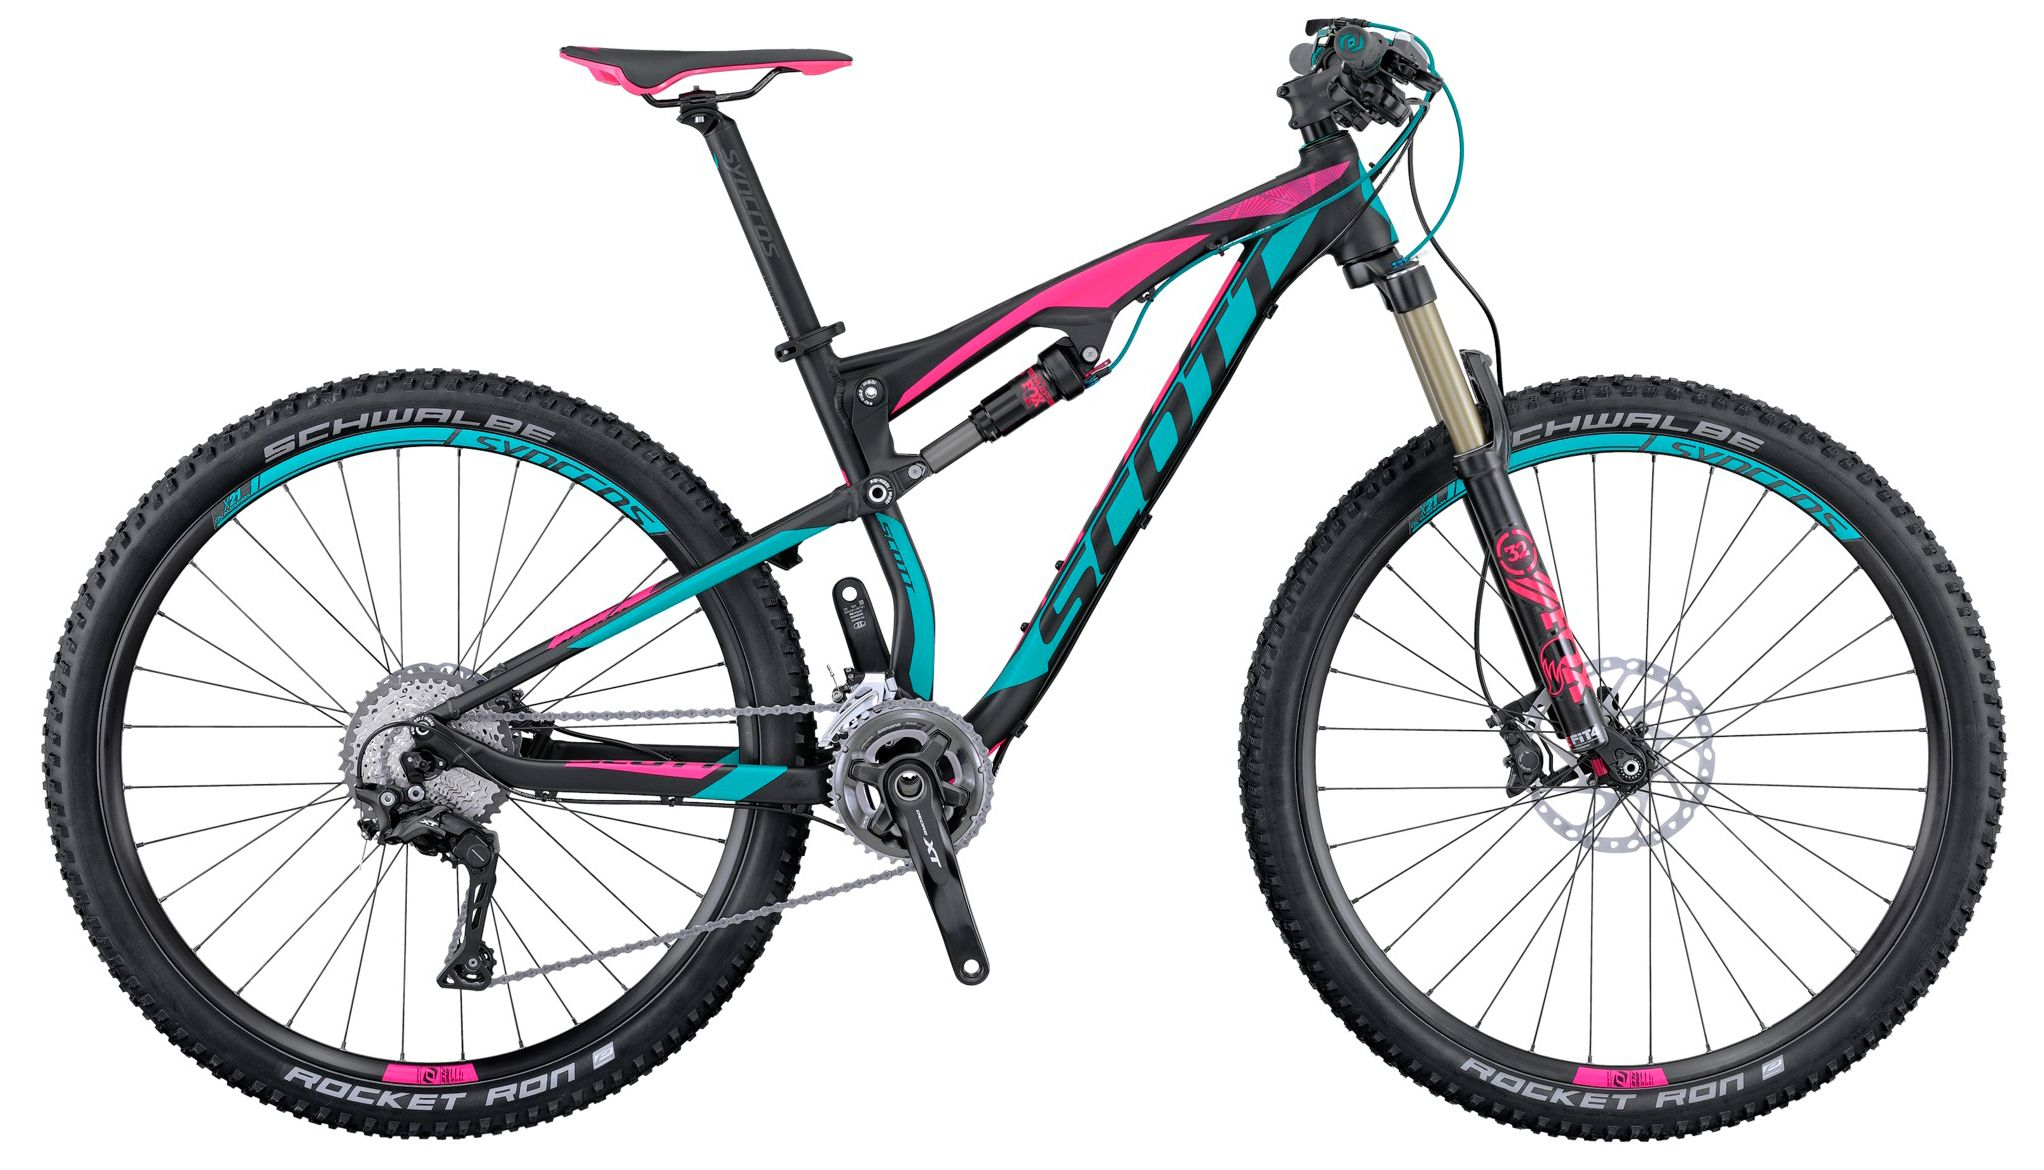 Велосипед Scott Contessa Spark 700 2016  велосипед scott contessa spark 700 rc 2016